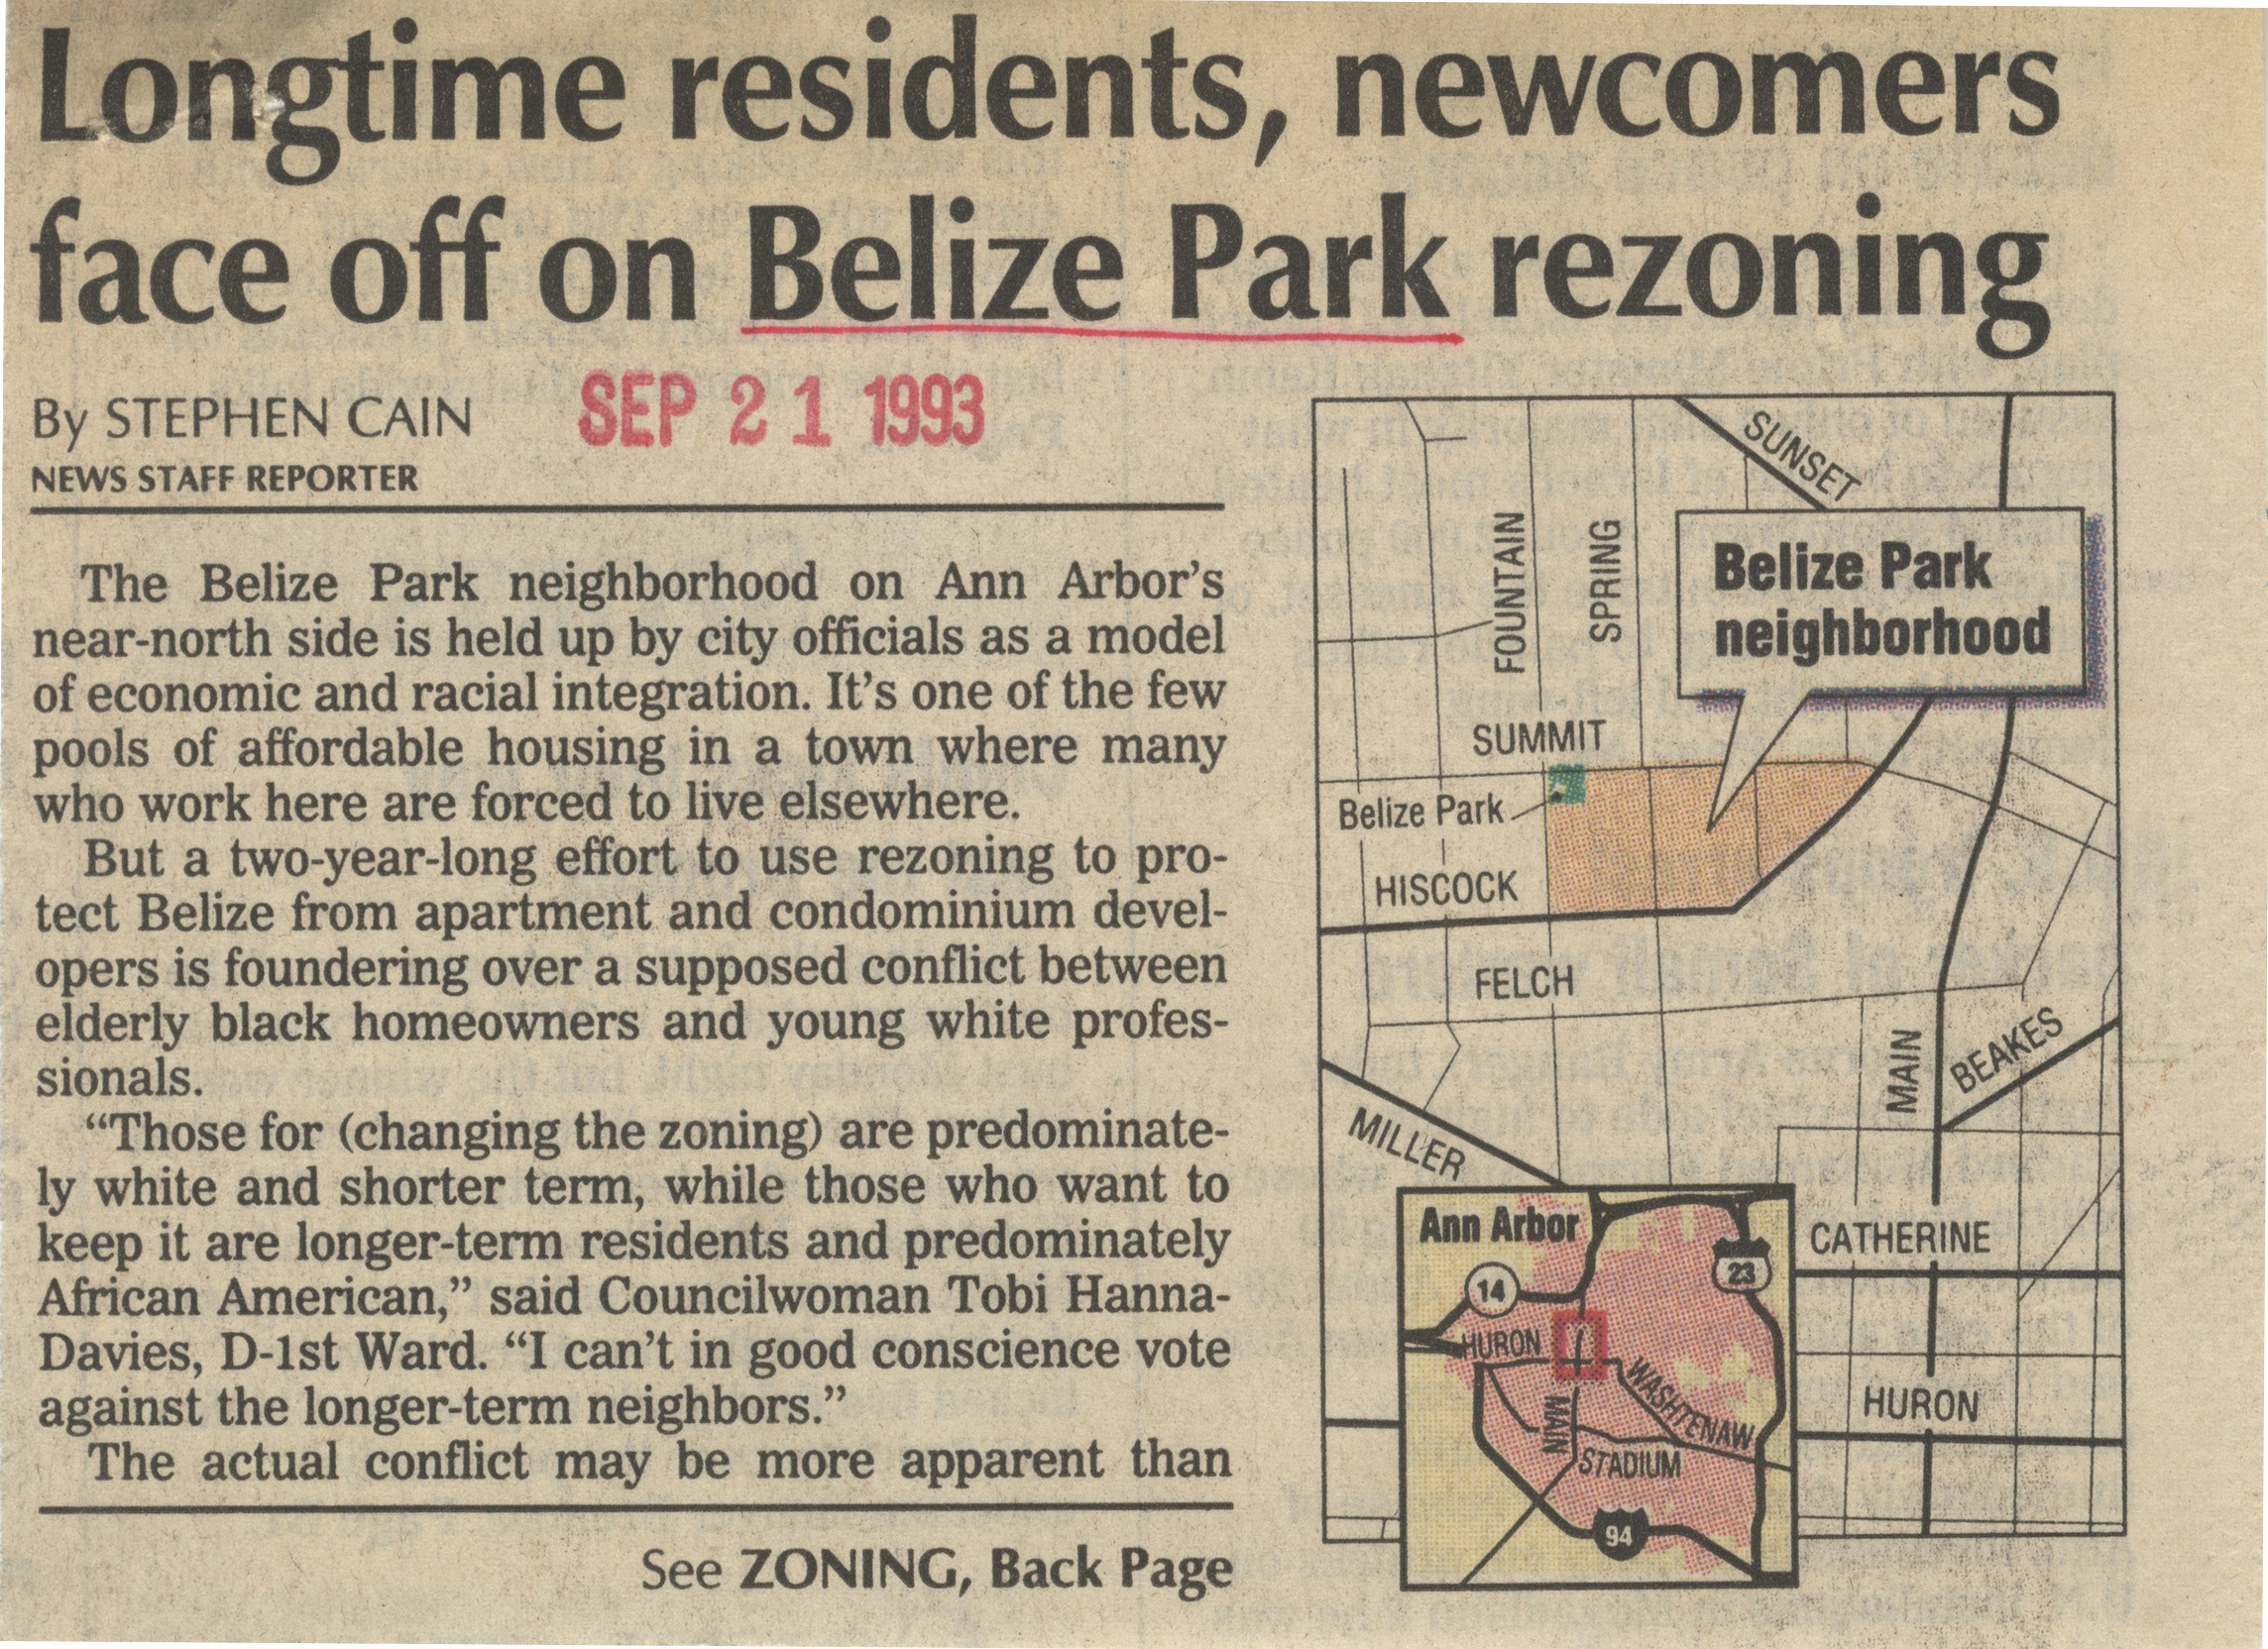 Longtime Residents, Newcomers Face Off On Belize Park Rezoning image